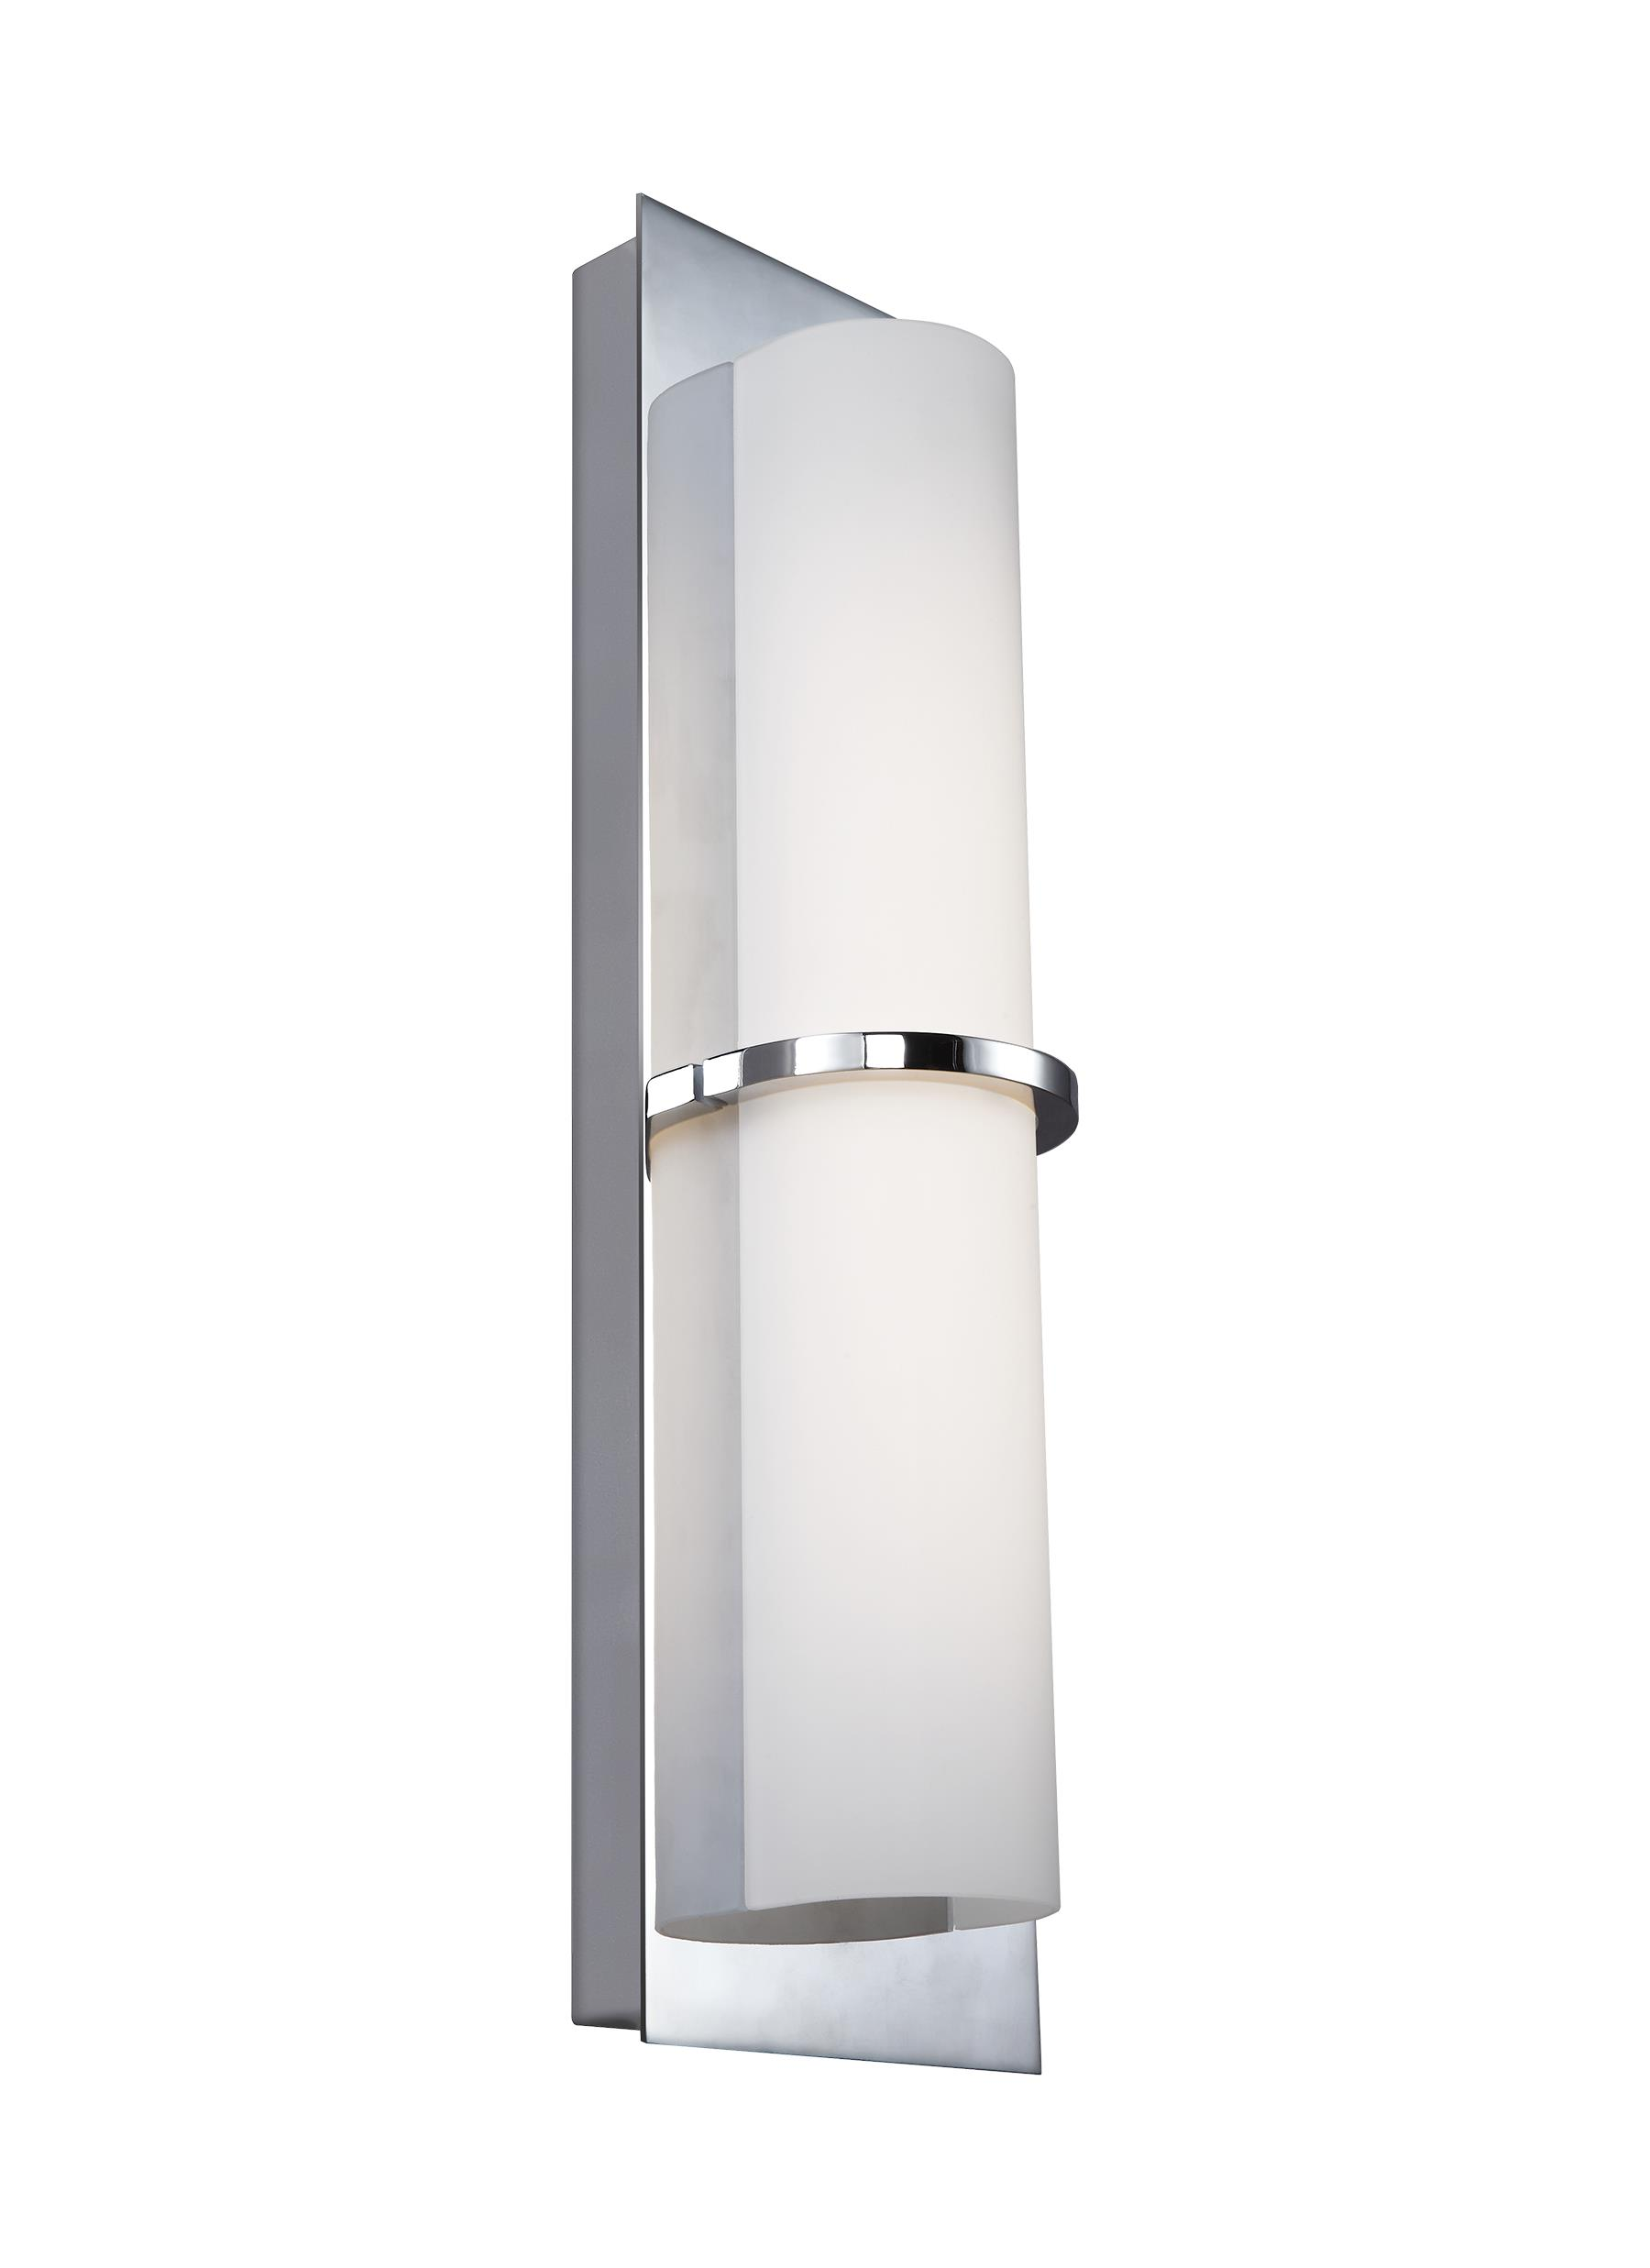 wall brushed wh modern aluminum white qb bruck loading zoom bru interior led sconce exterior